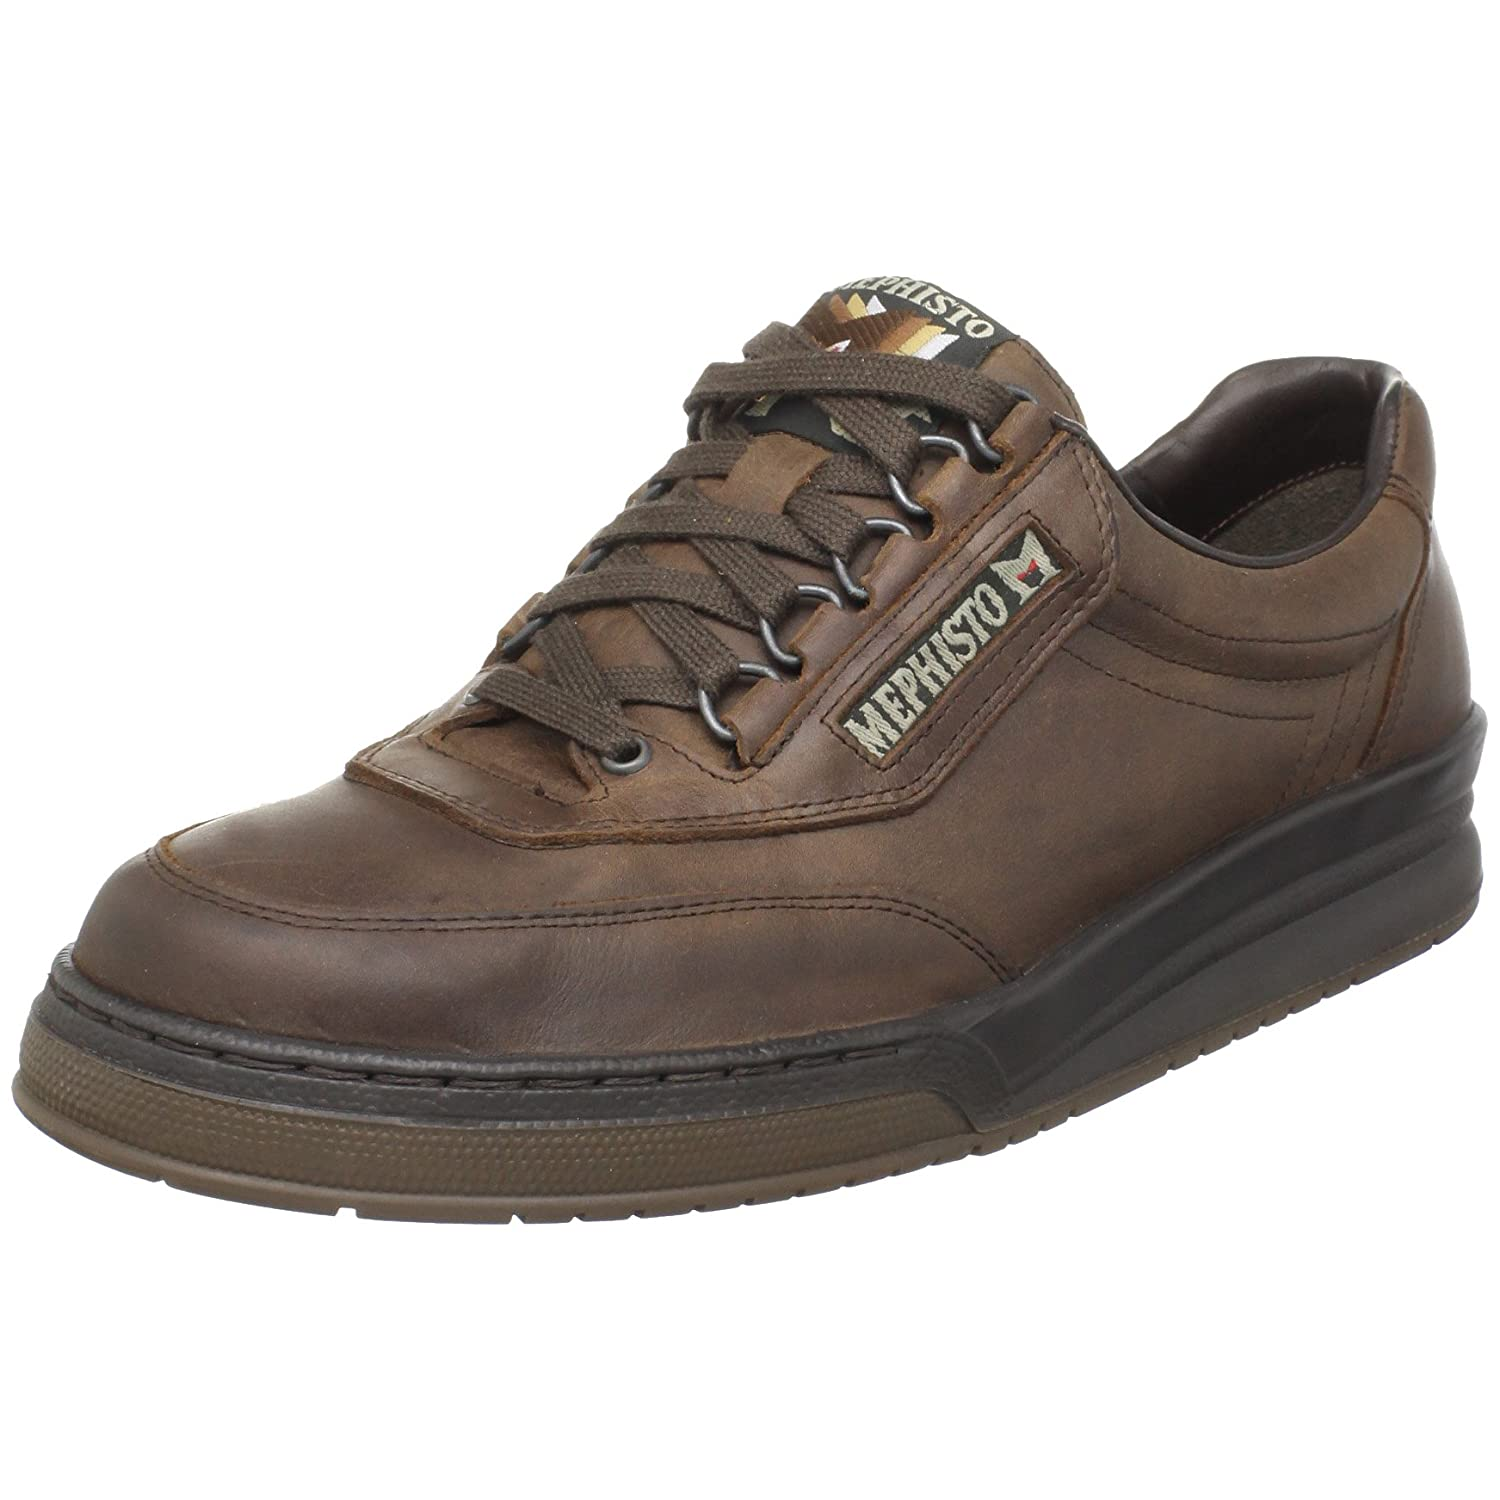 dd725e7425 Amazon.com | Mephisto Men's Match Walking Shoe | Fashion Sneakers